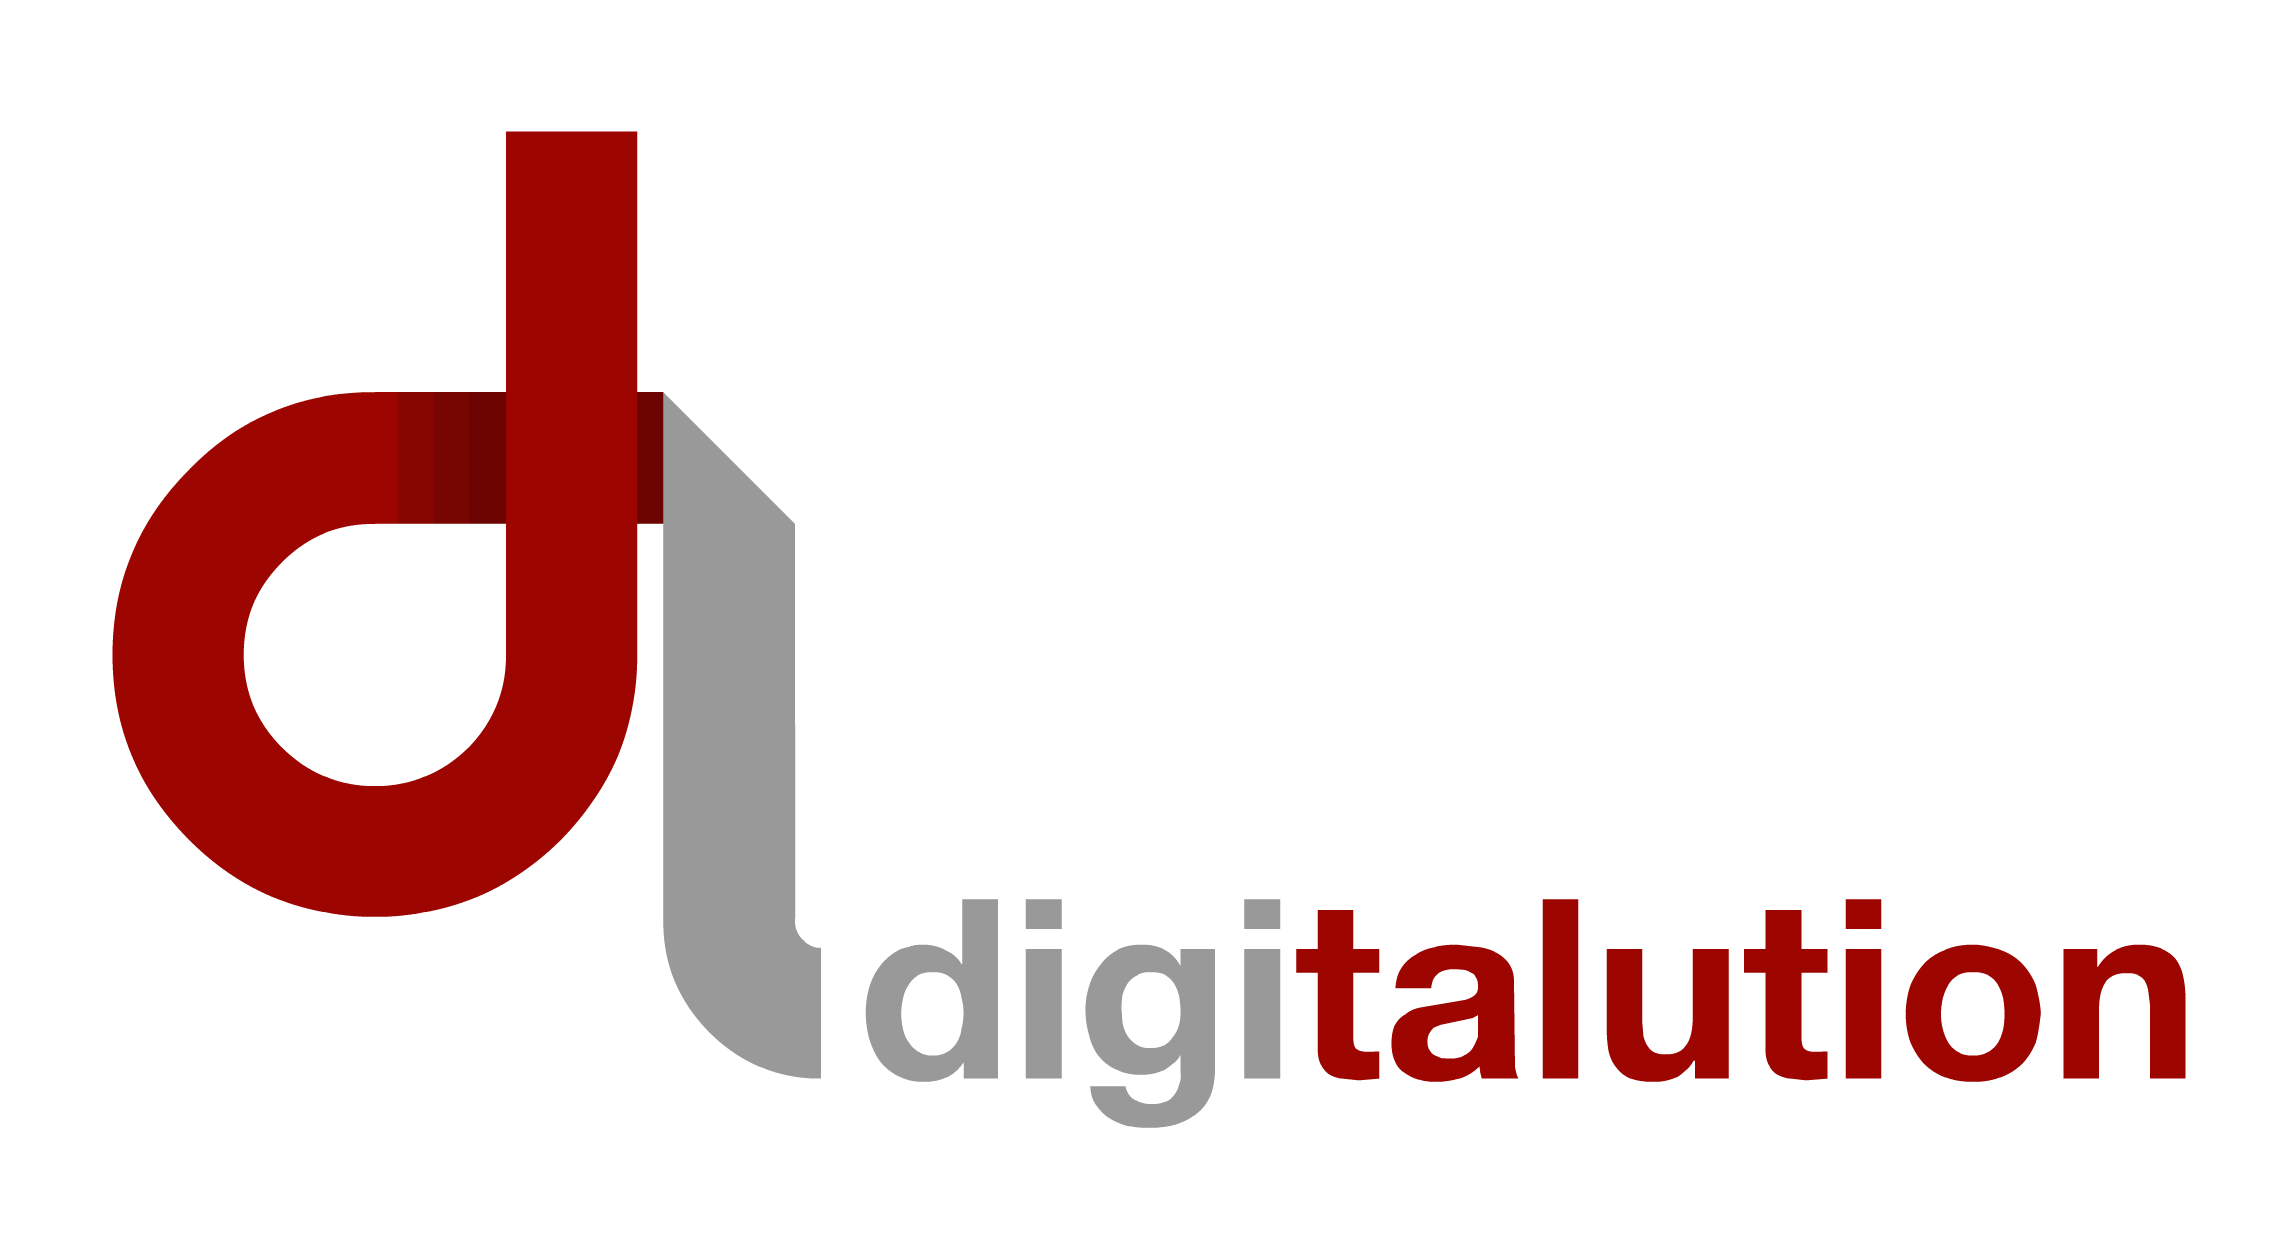 digitalution 4C